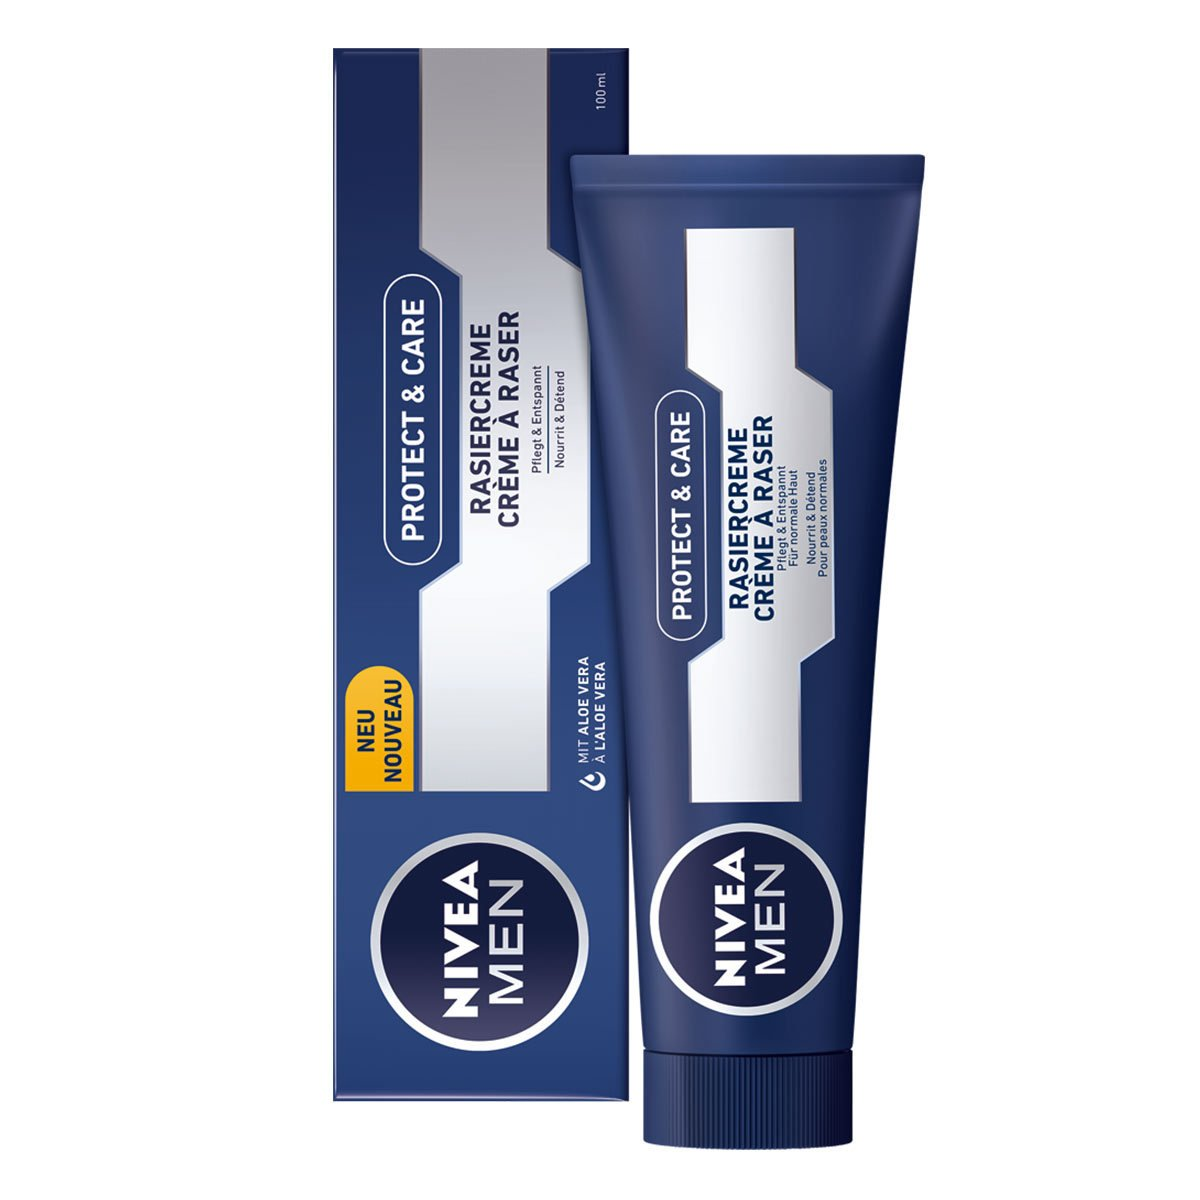 Nivea Men Original Lather Shaving Cream in Tube 3.5oz - (PACK OF 3)